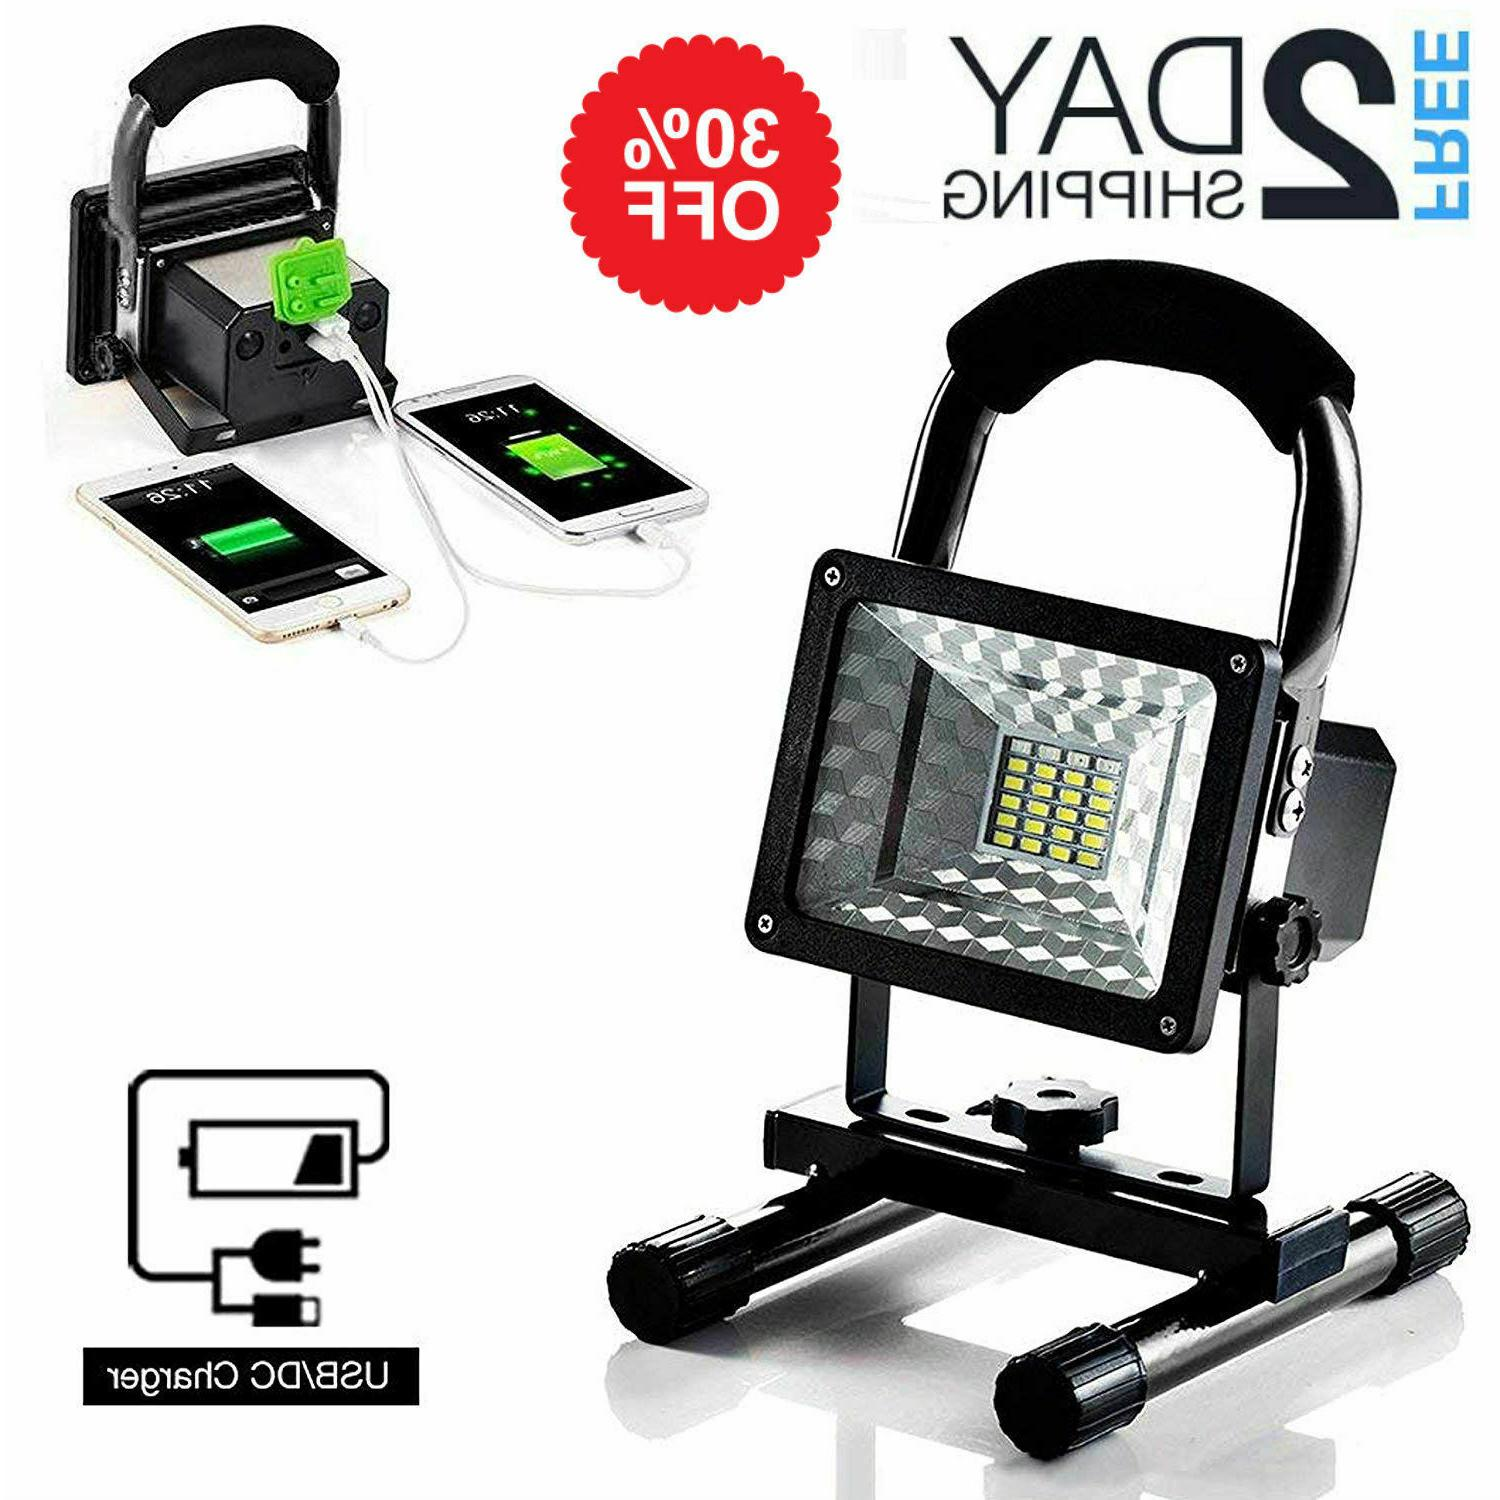 vaincre spotlights work lights with upgrade magnet